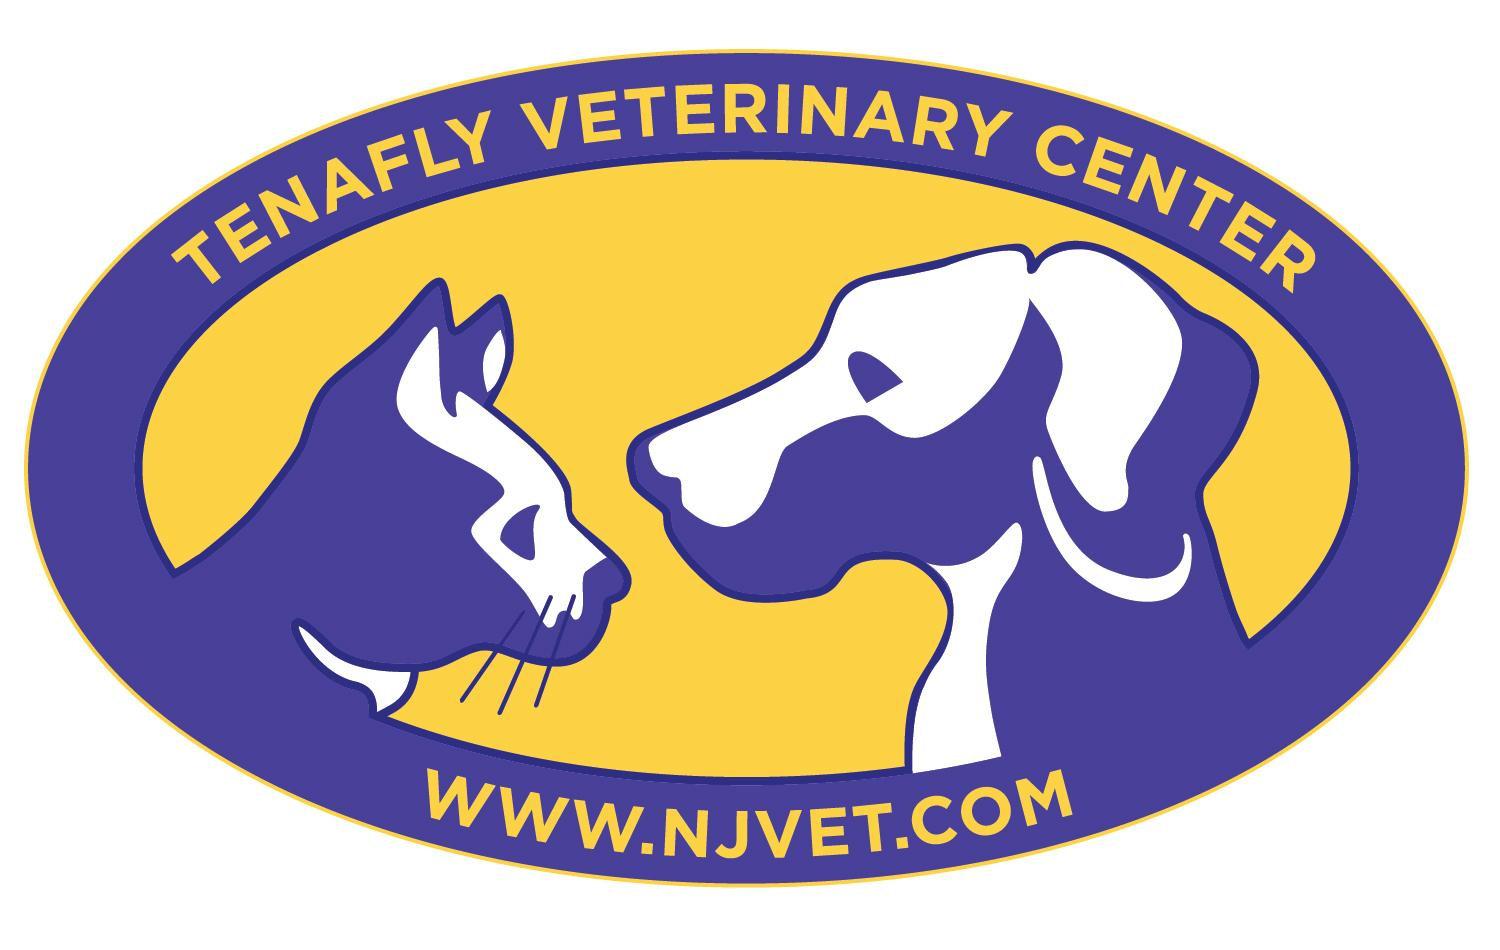 Tenafly Veterinary Center